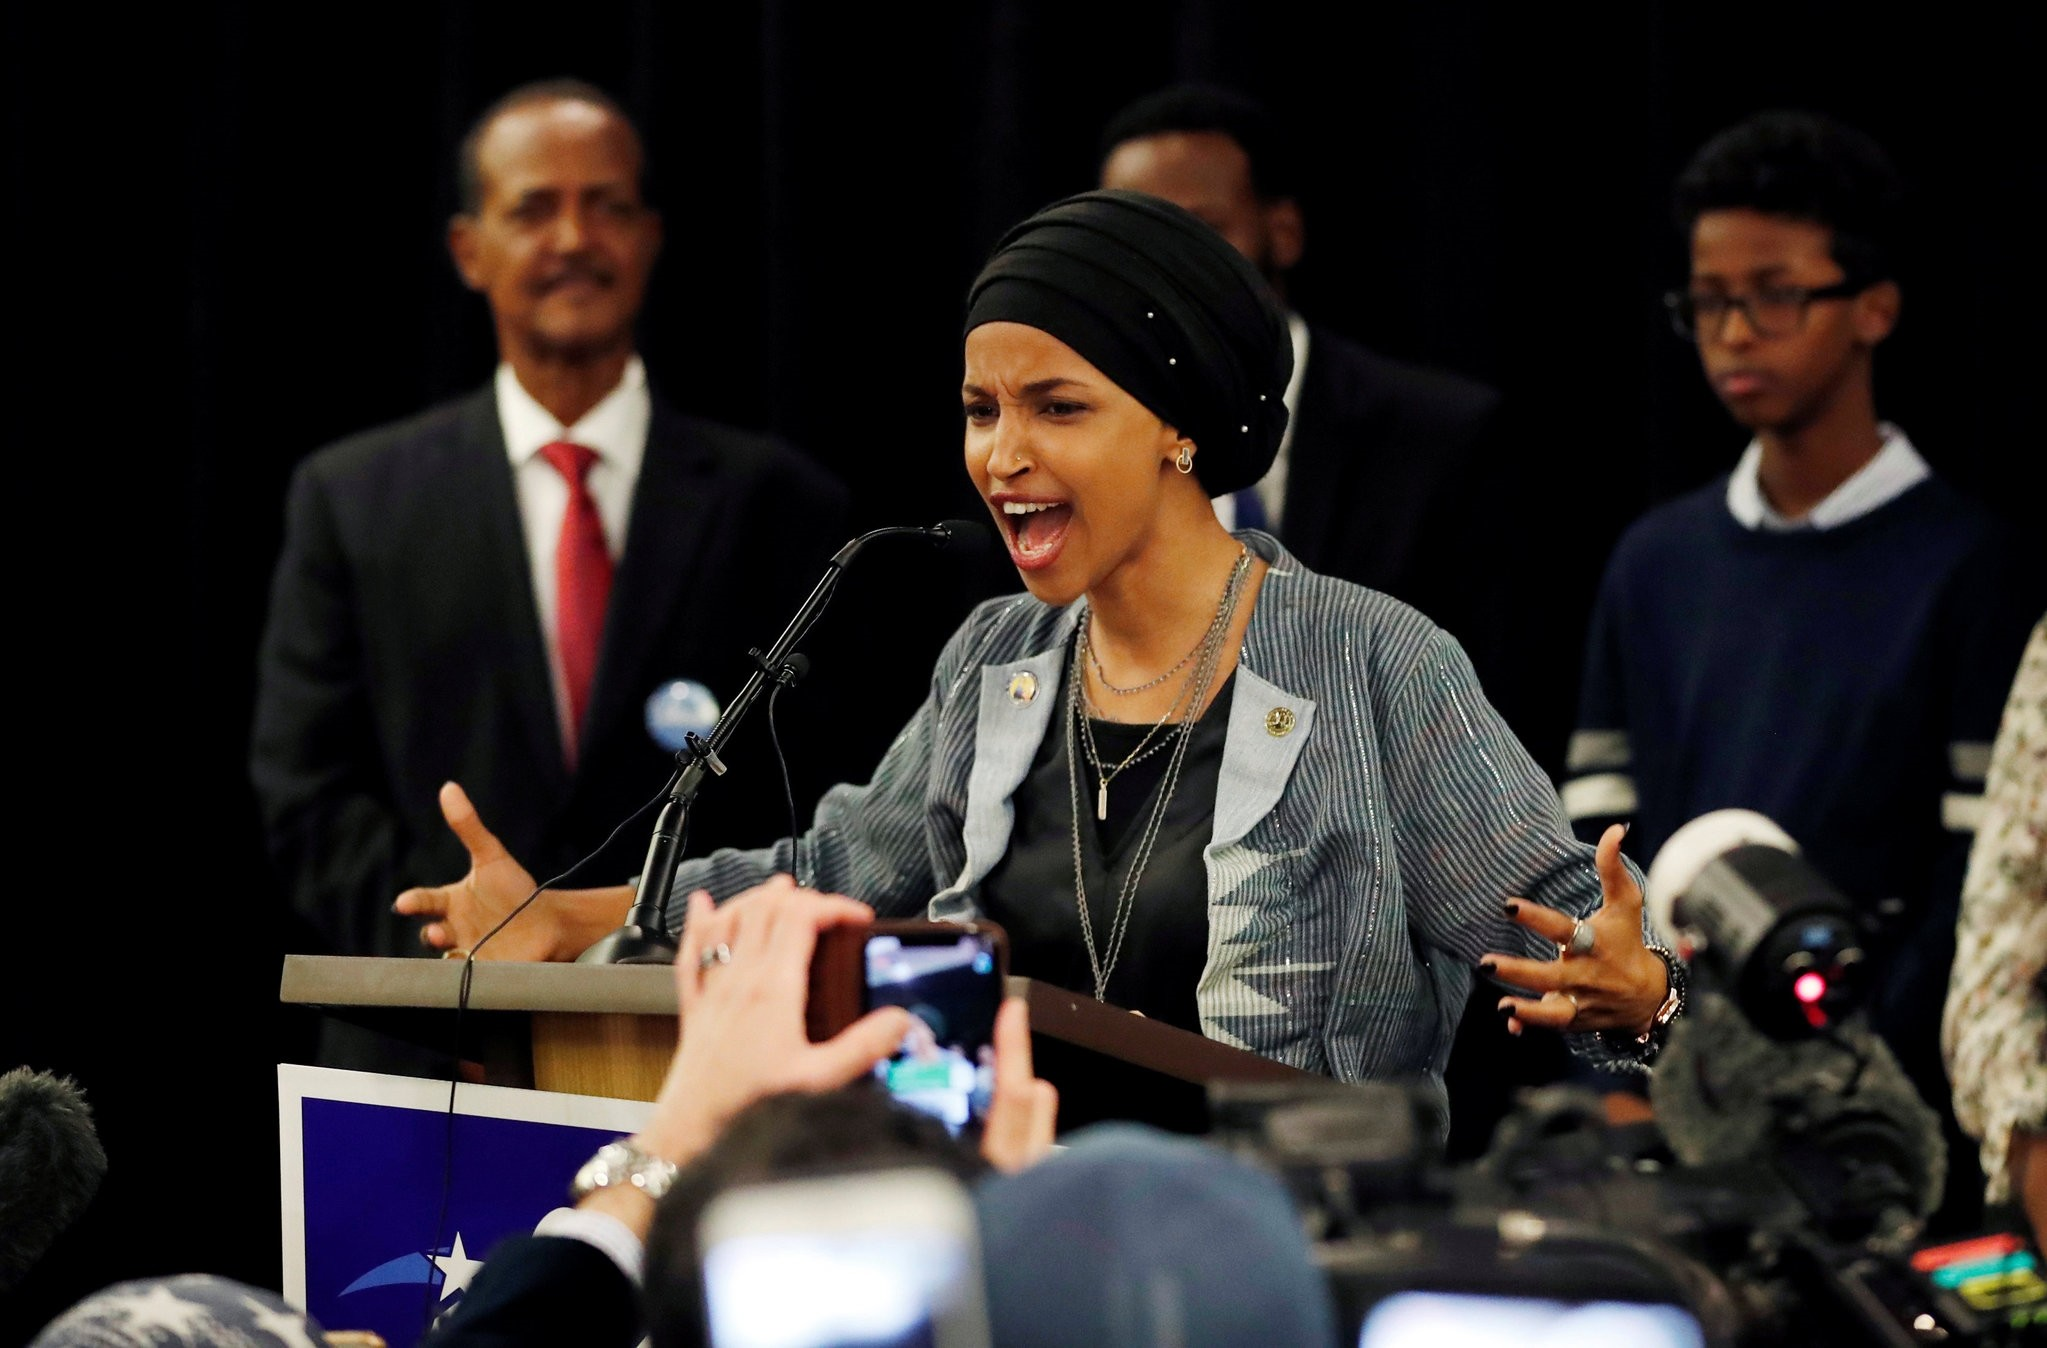 Democratic congressional candidate Ilhan Omar speaks at her midterm election night party in Minneapolis, Minnesota, Nov. 6.